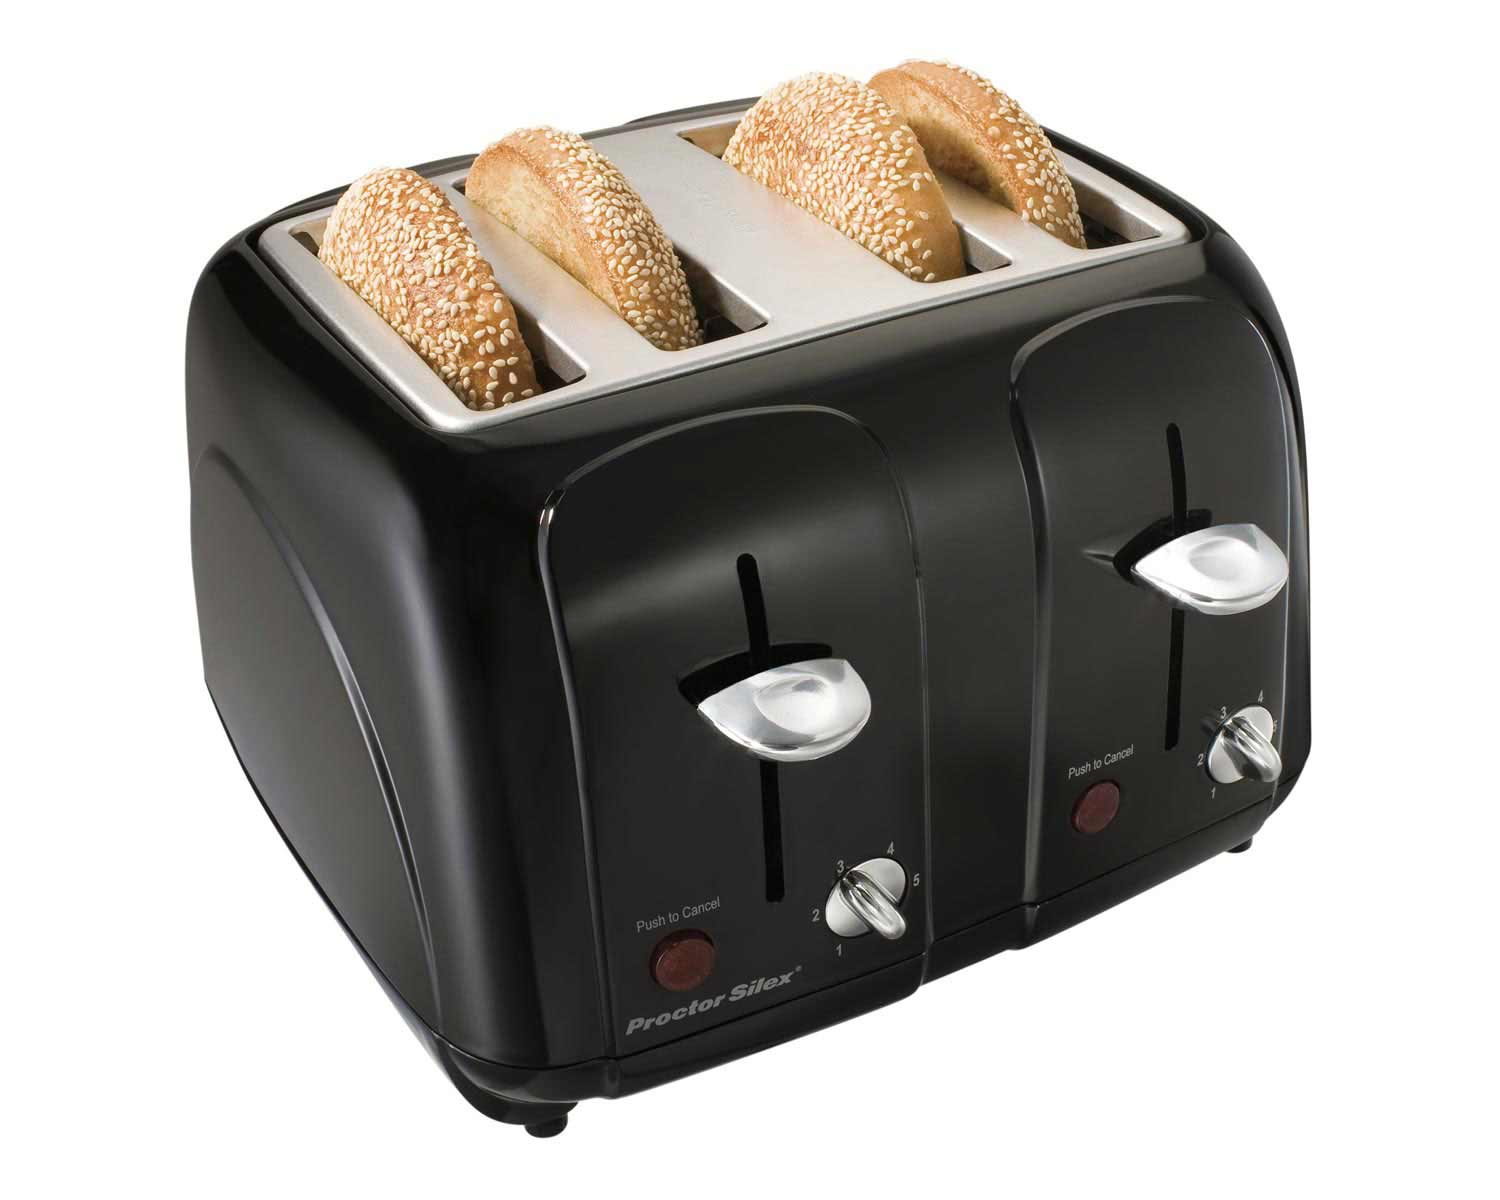 Cool-Touch 4 Slice Toaster (black)-24201